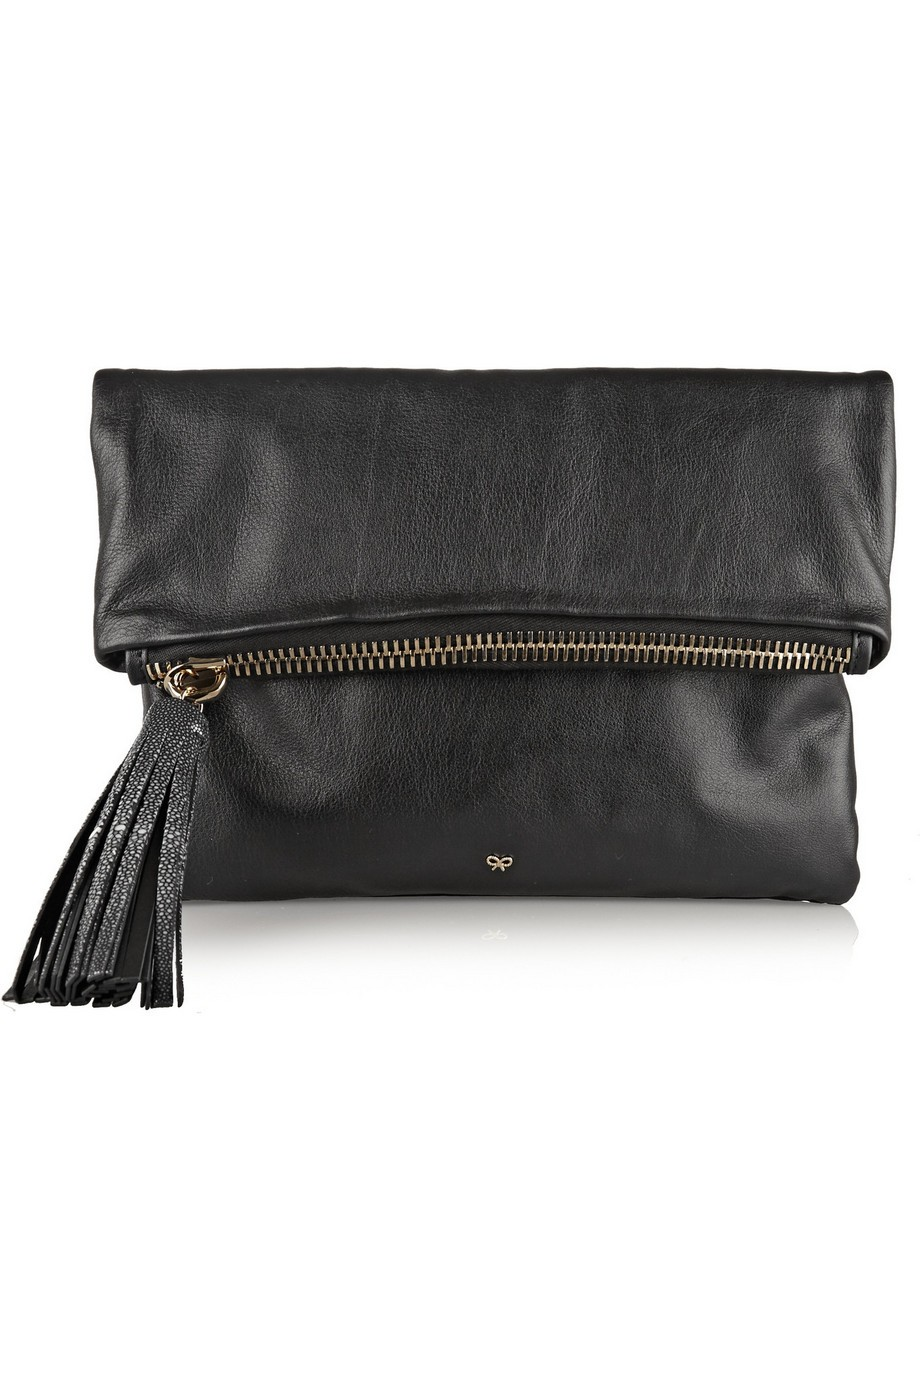 Huxley fold-over leather clutch